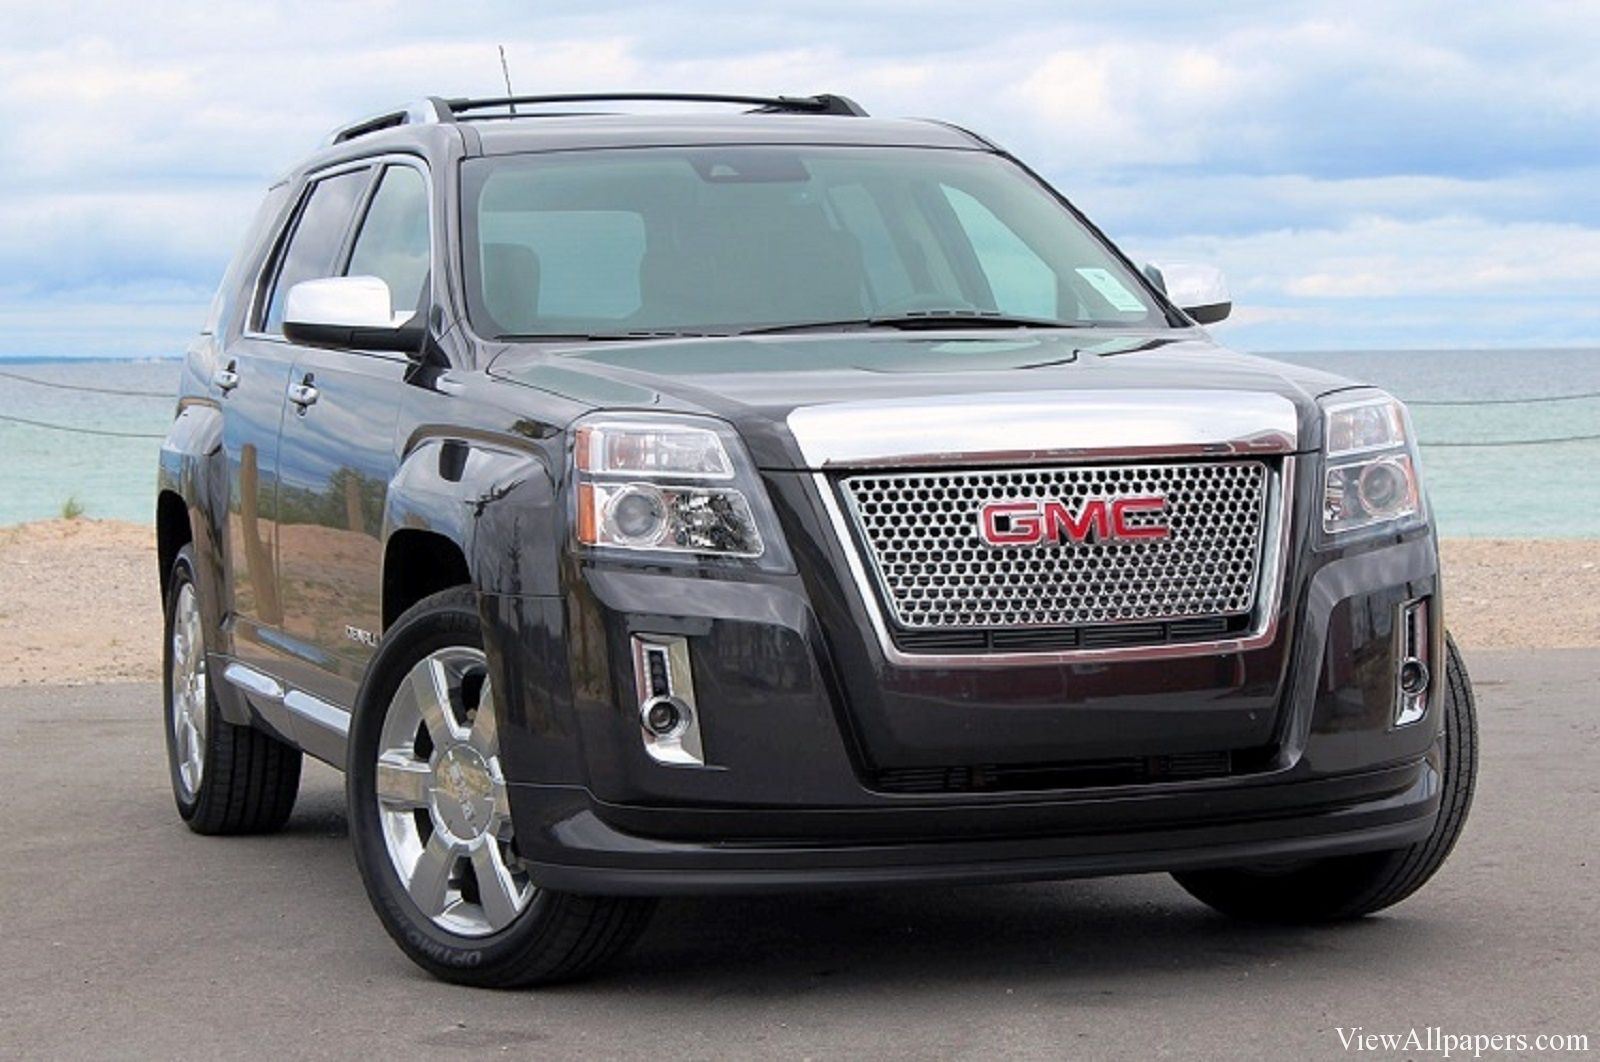 2016 Gmc Envoy Cars Hd Wallpapers Gmc Terrain Gmc Envoy